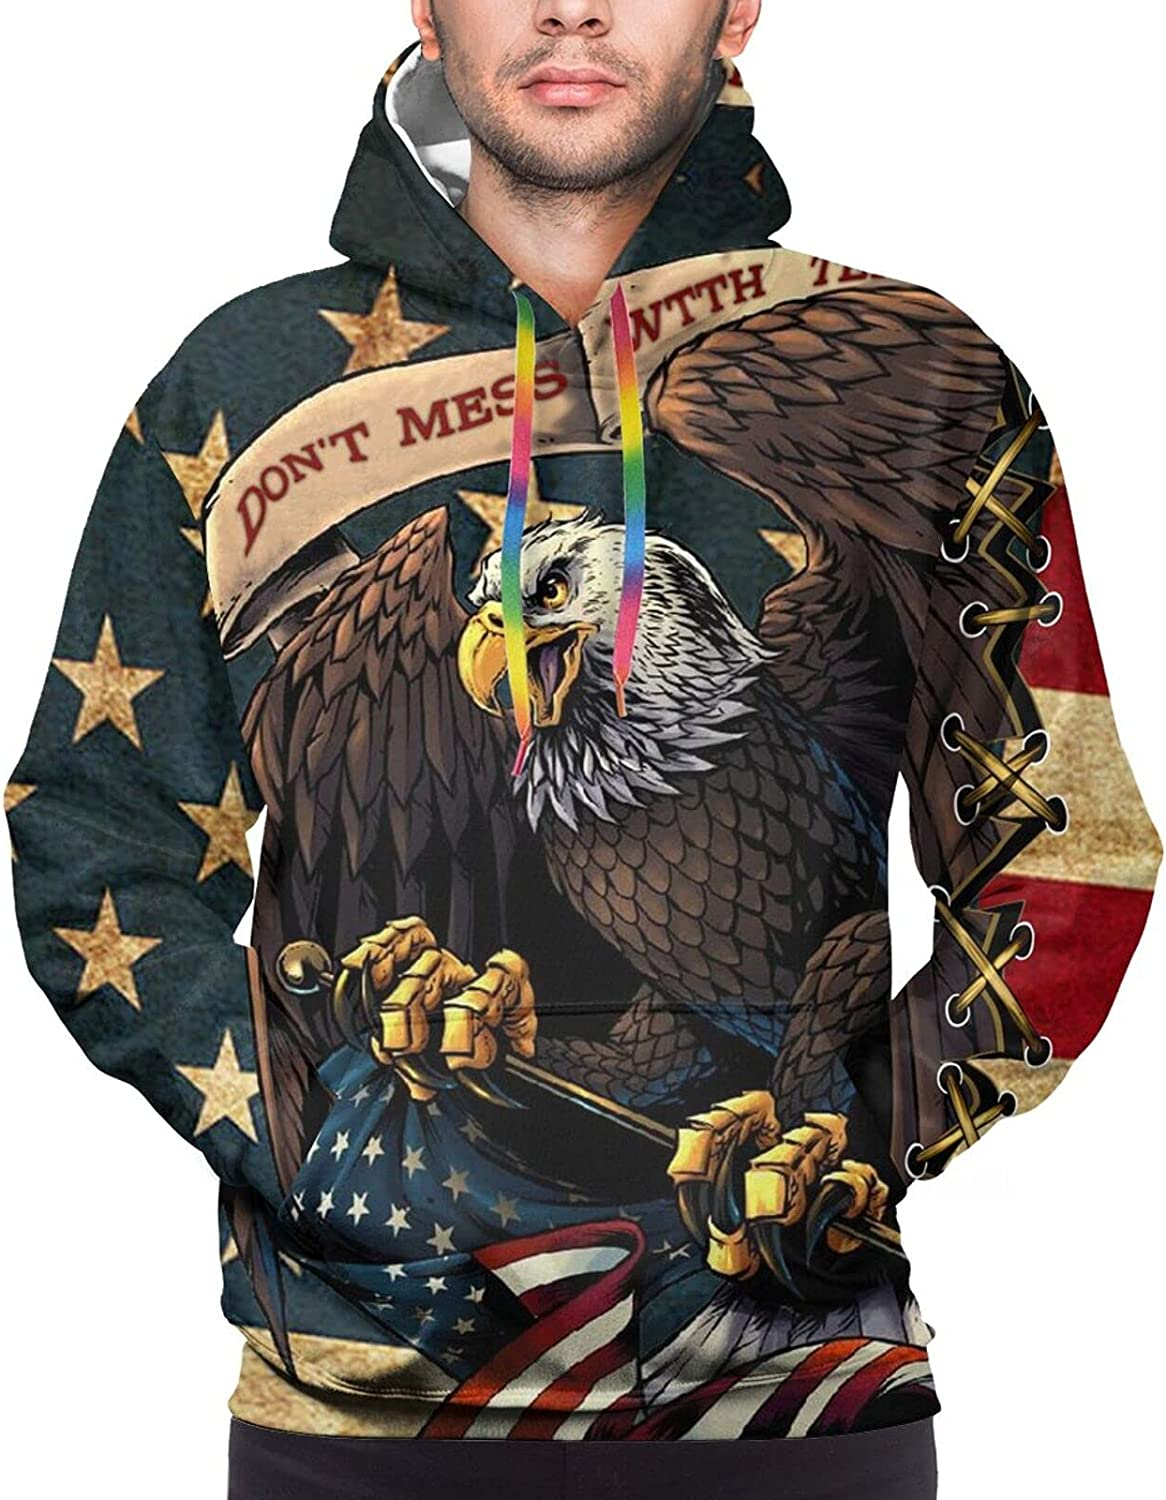 Hoodie For Men Women Unisex Dont Mess With Texas American Eagle Pullover Hooded Sports Sweatshirt